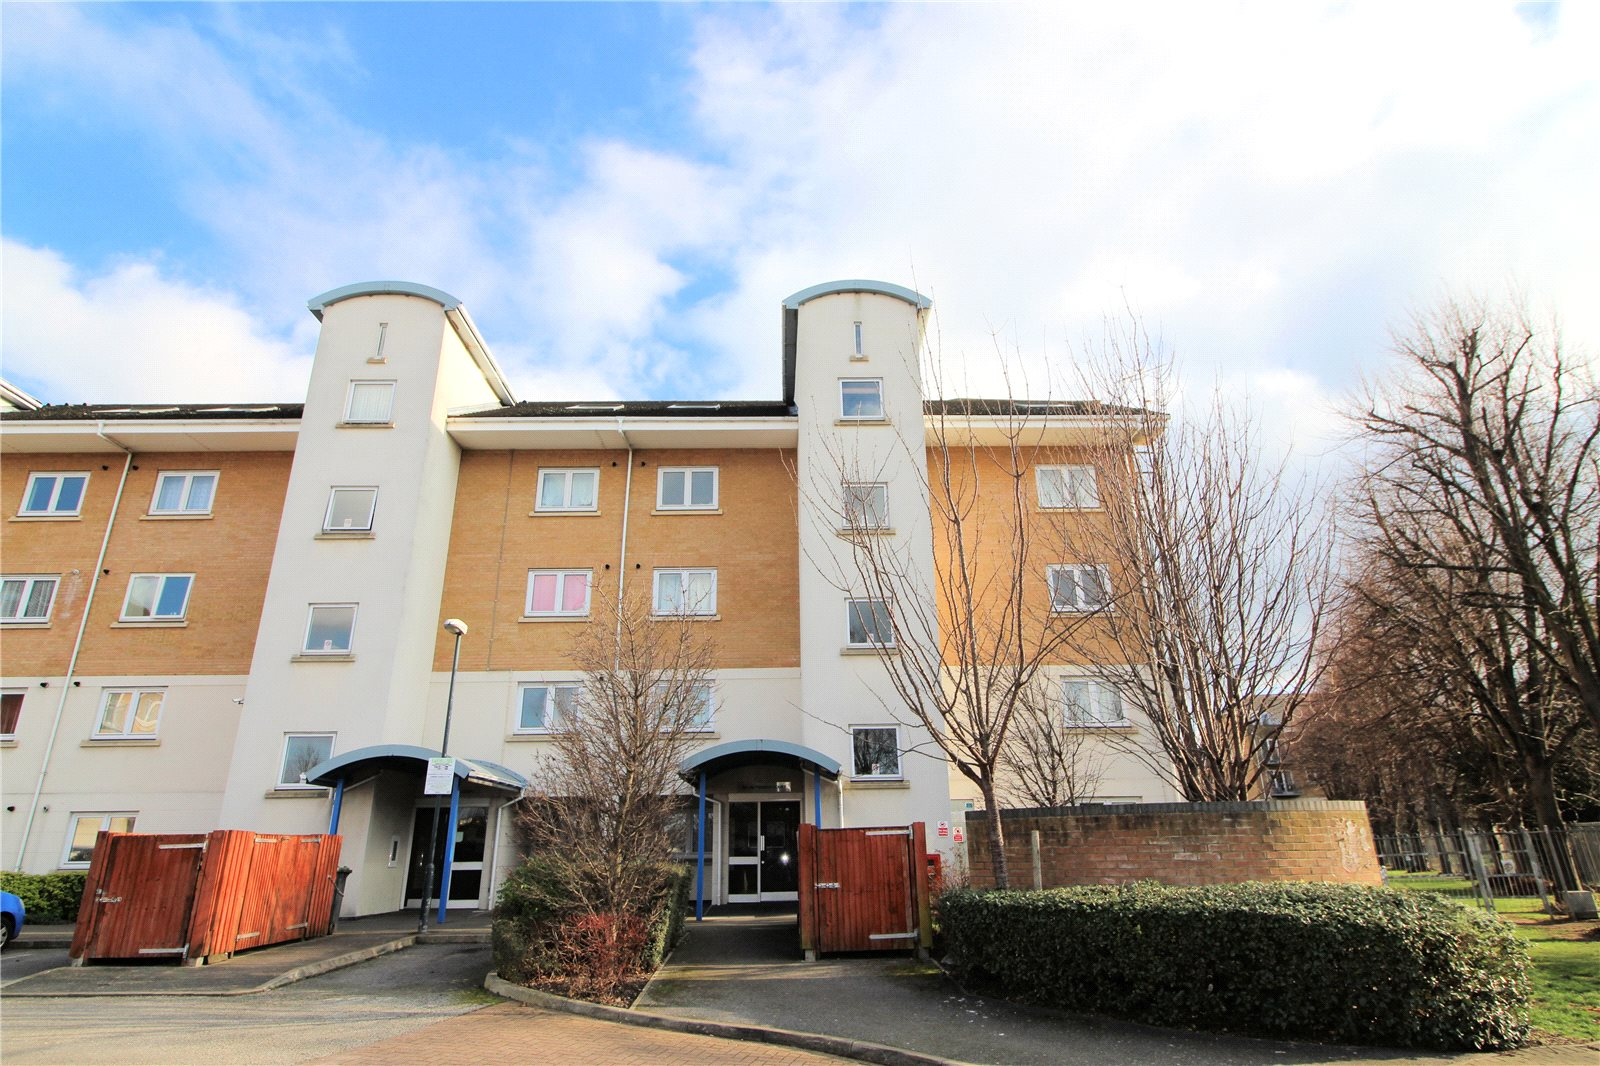 Francis Court, MacArthur Close, Erith, Kent, DA8